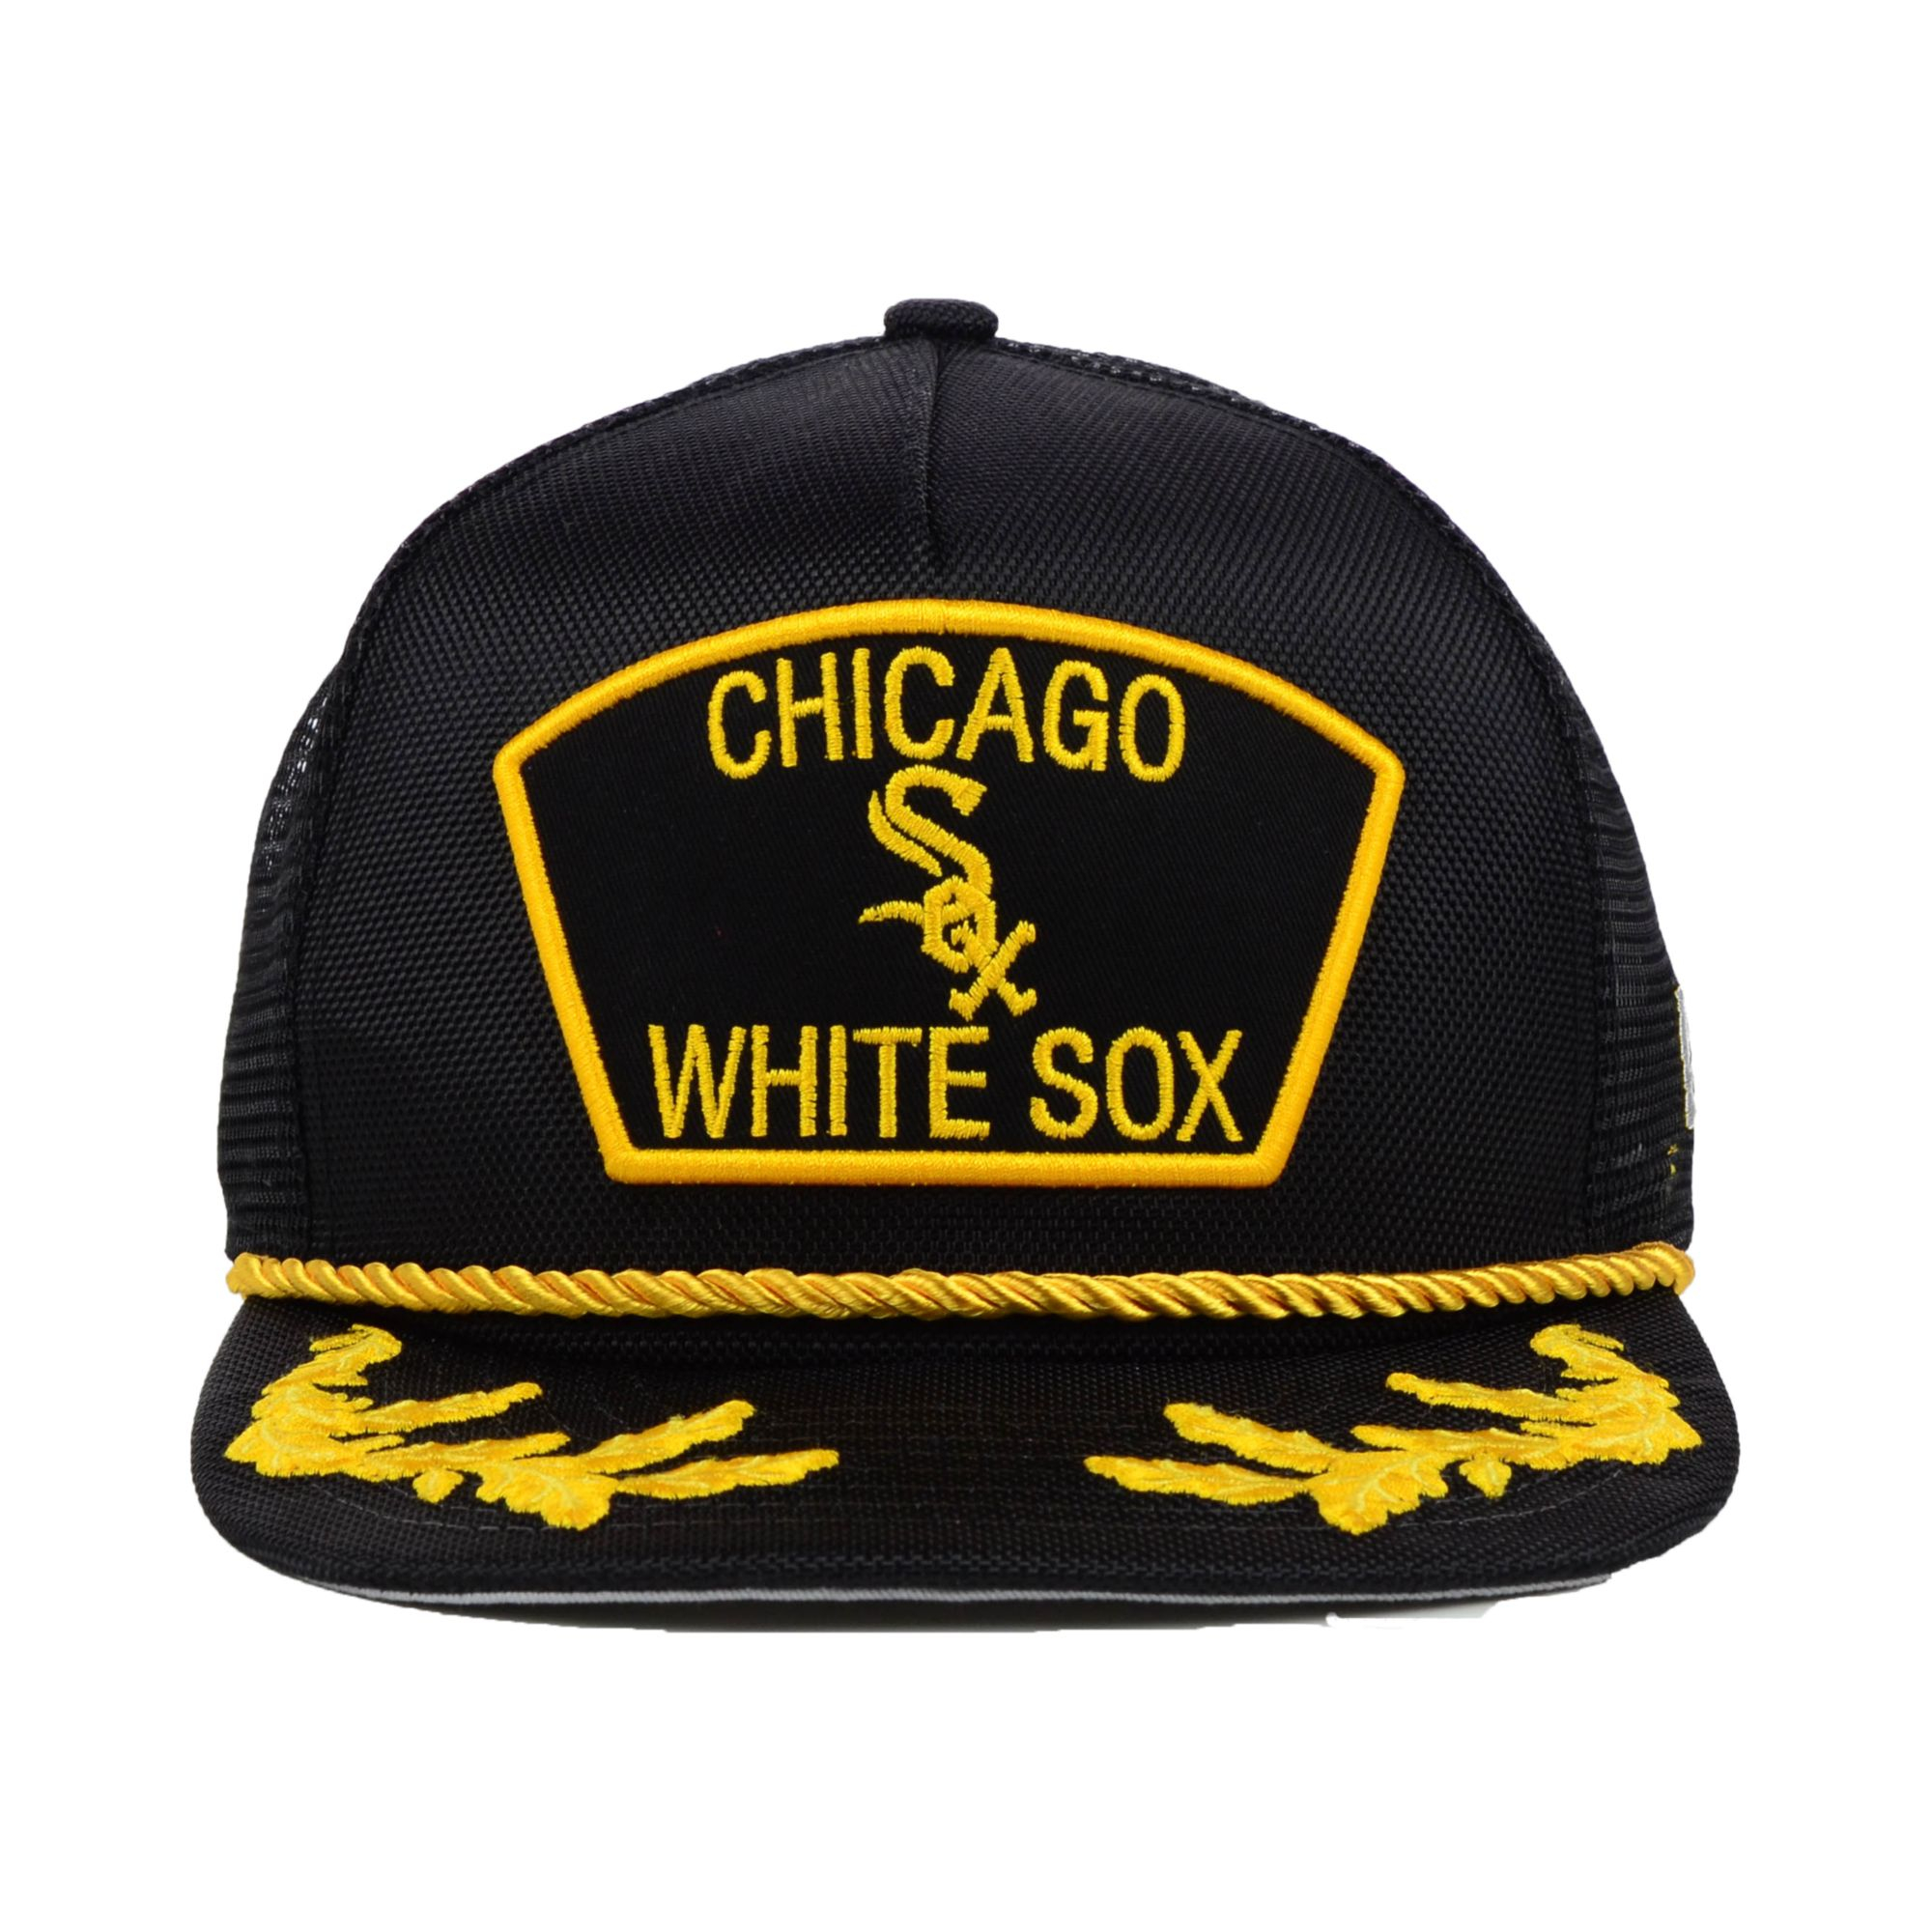 buy online 085c7 5d974 ... sweden lyst ktz chicago white sox mlb 9fifty snapback cap in yellow for  men 1db24 71ac9